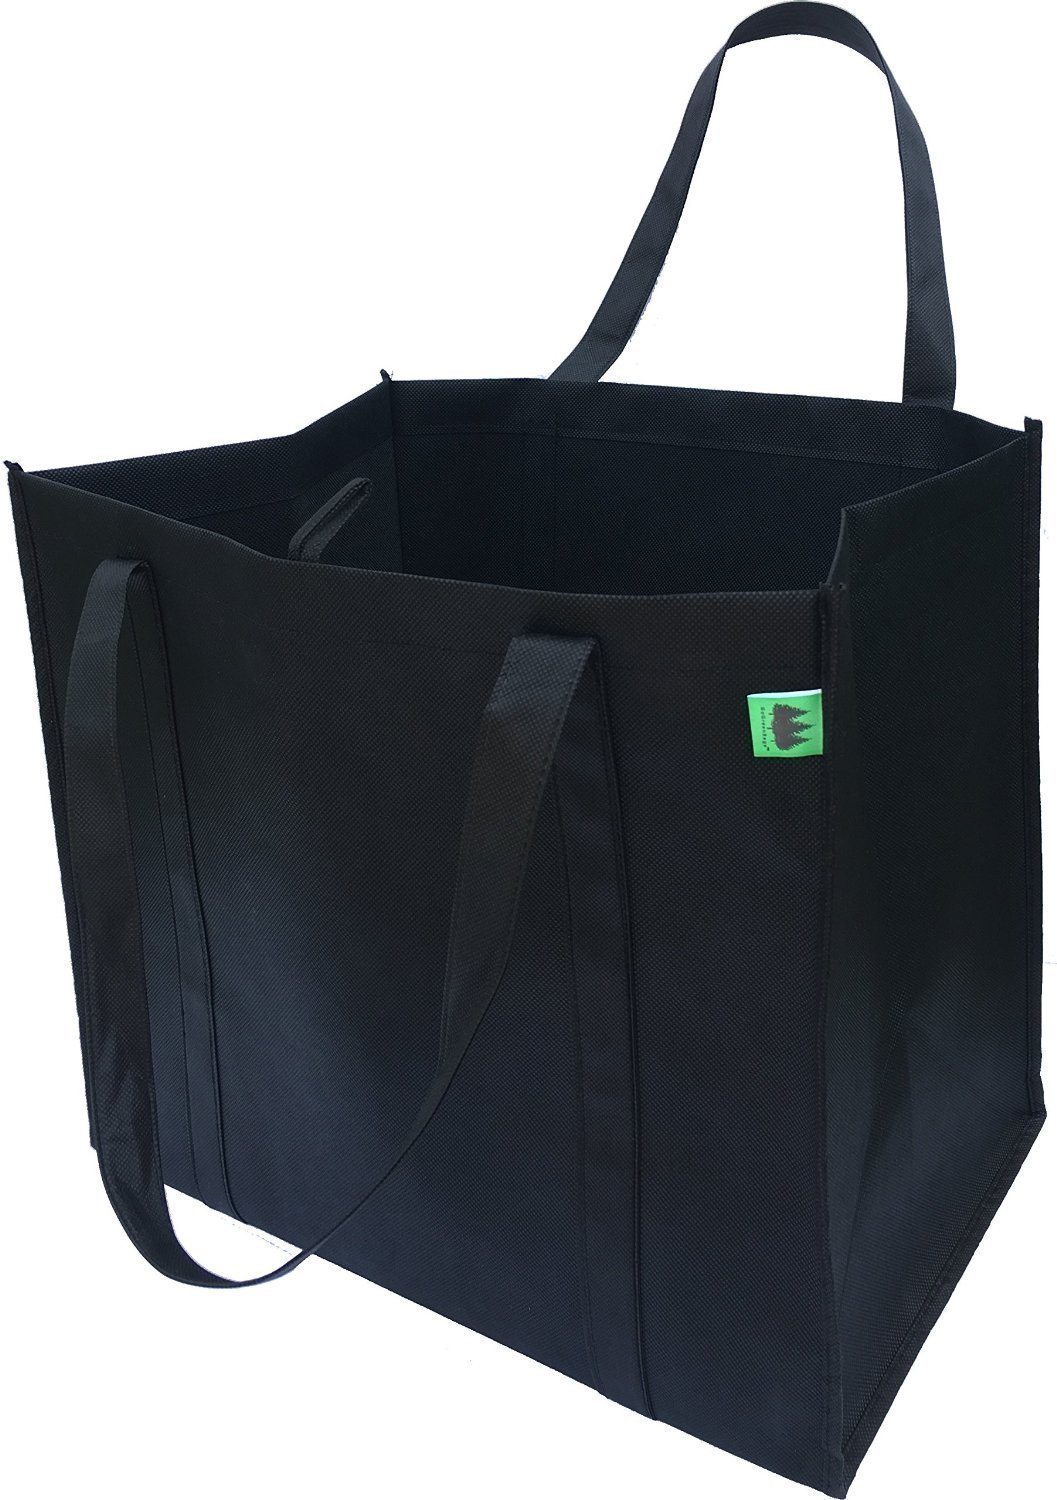 Large grocerytote bags reusable